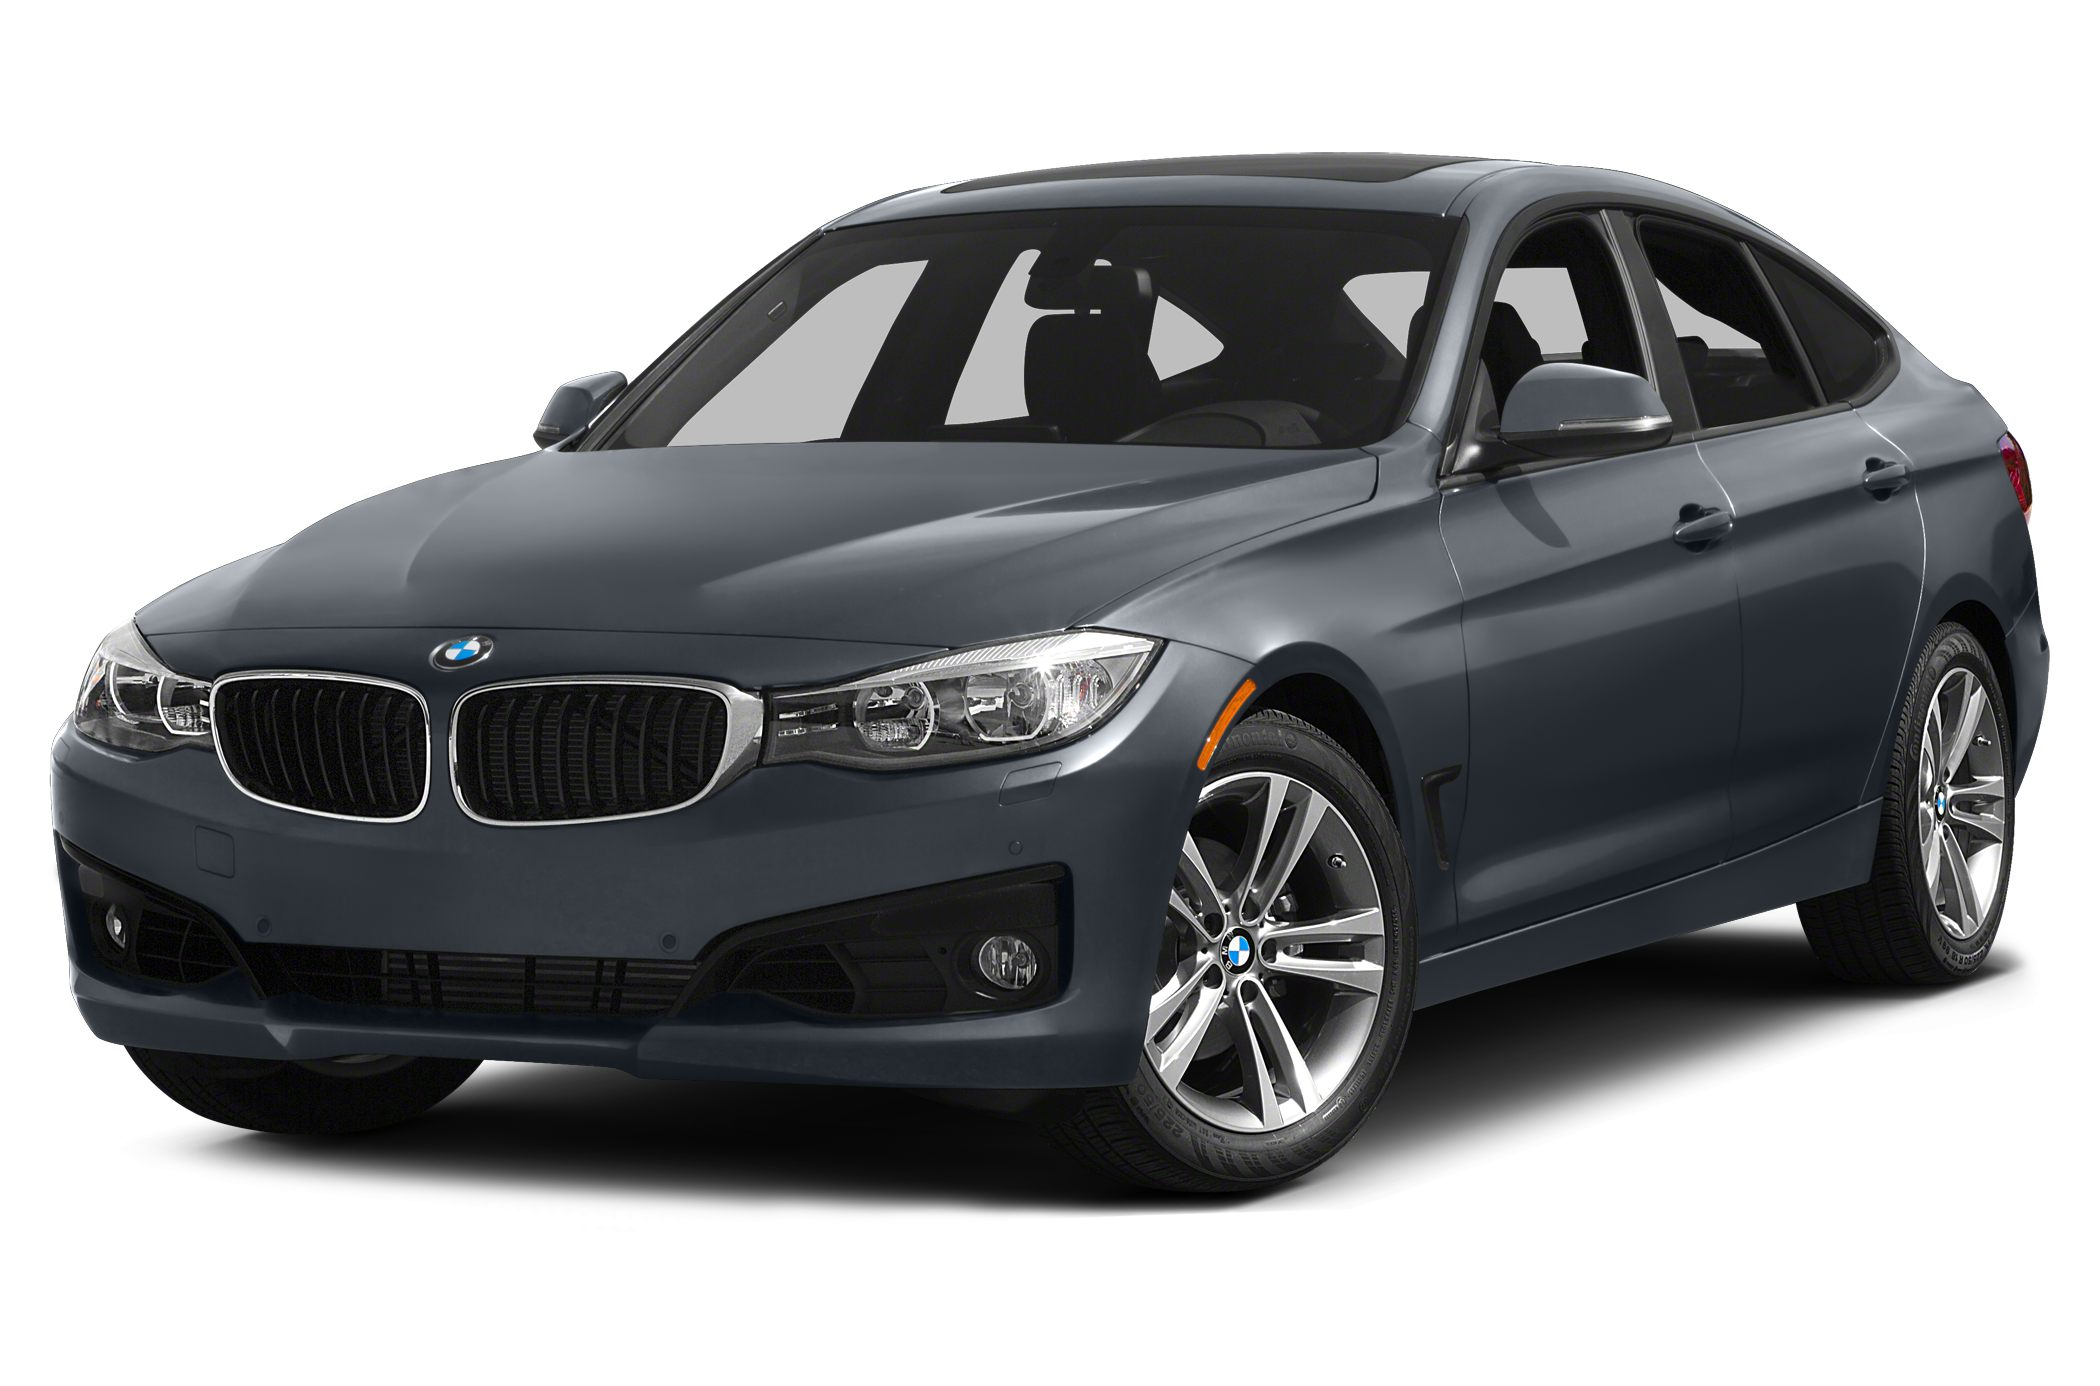 2015 BMW 328 Gran Turismo I XDrive Hatchback for sale in Watertown for $50,100 with 7 miles